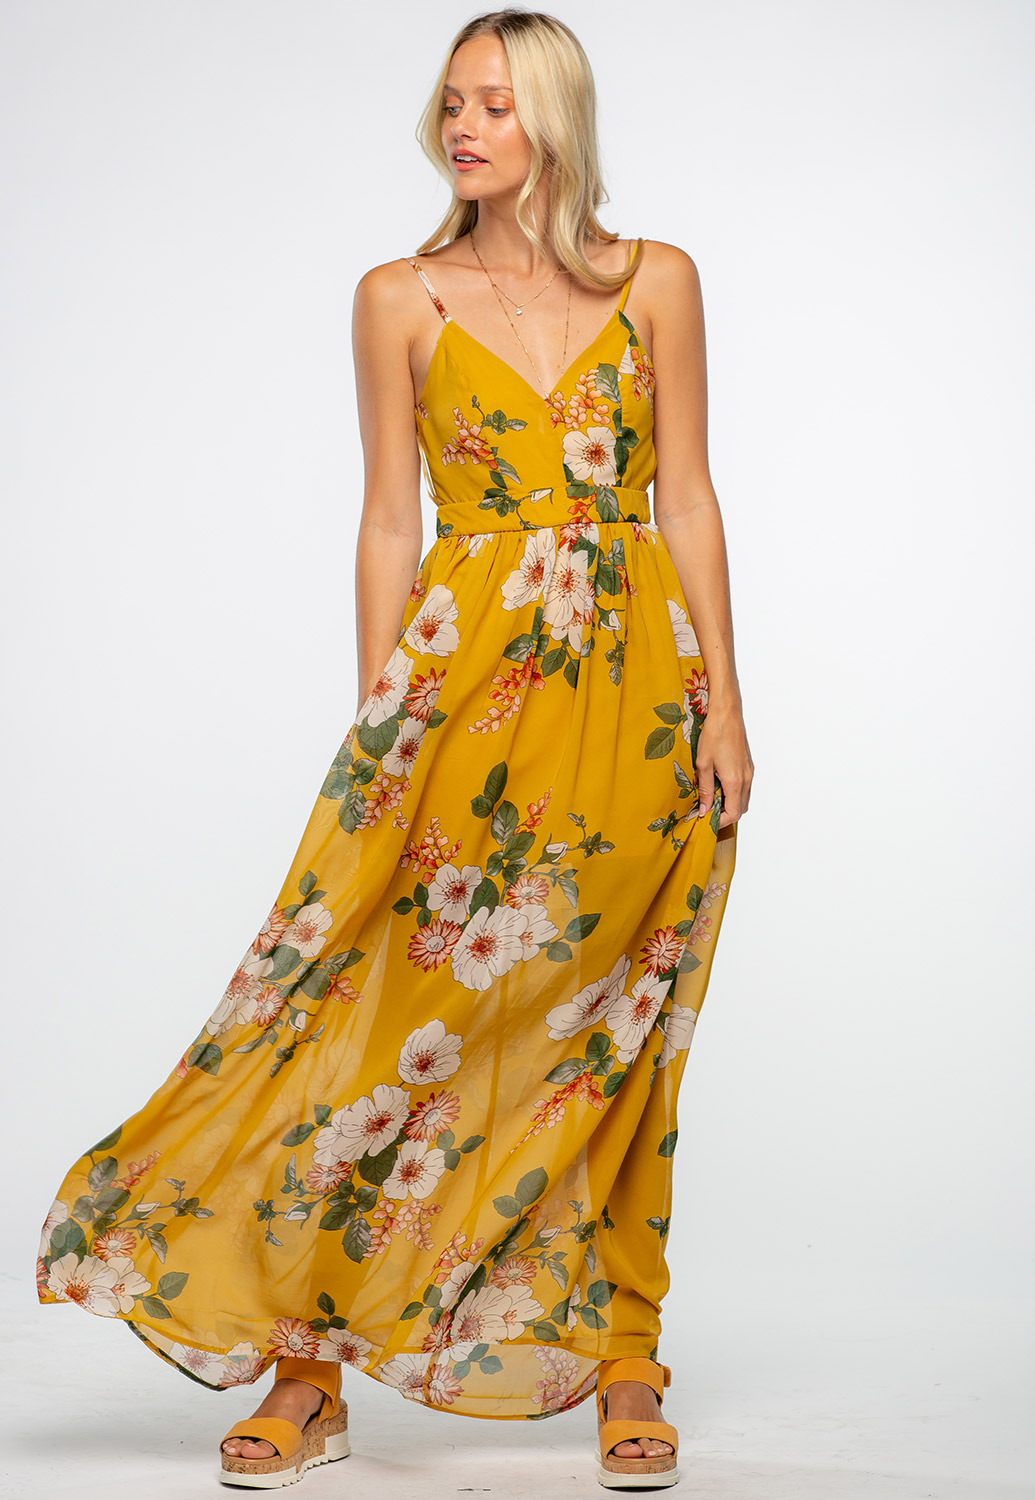 Spaghetti Strap V-Neck Floral Maxi Sheer Dress With Open Back